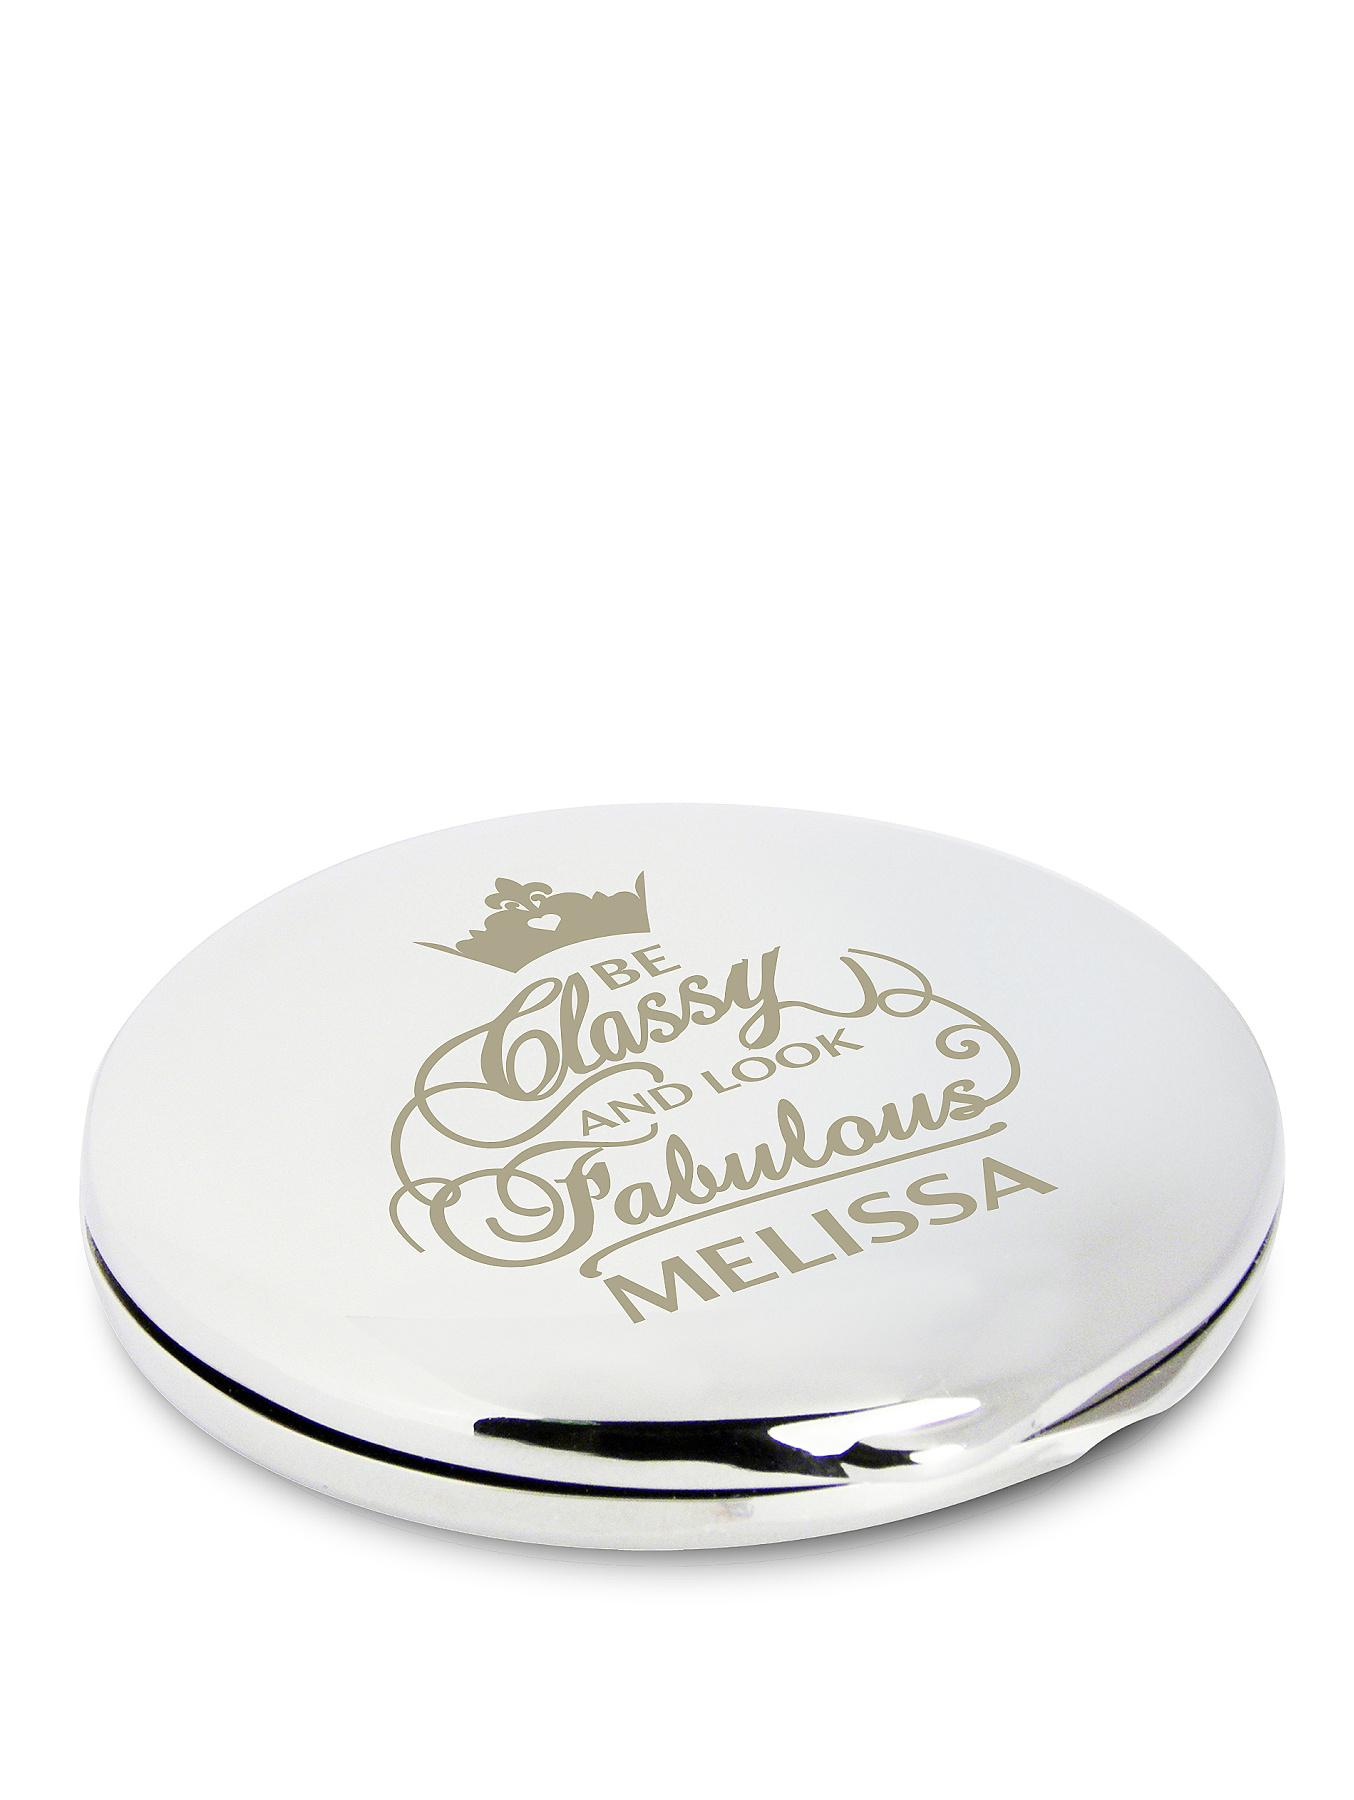 Personalised Classy and Fabulous Compact Mirror